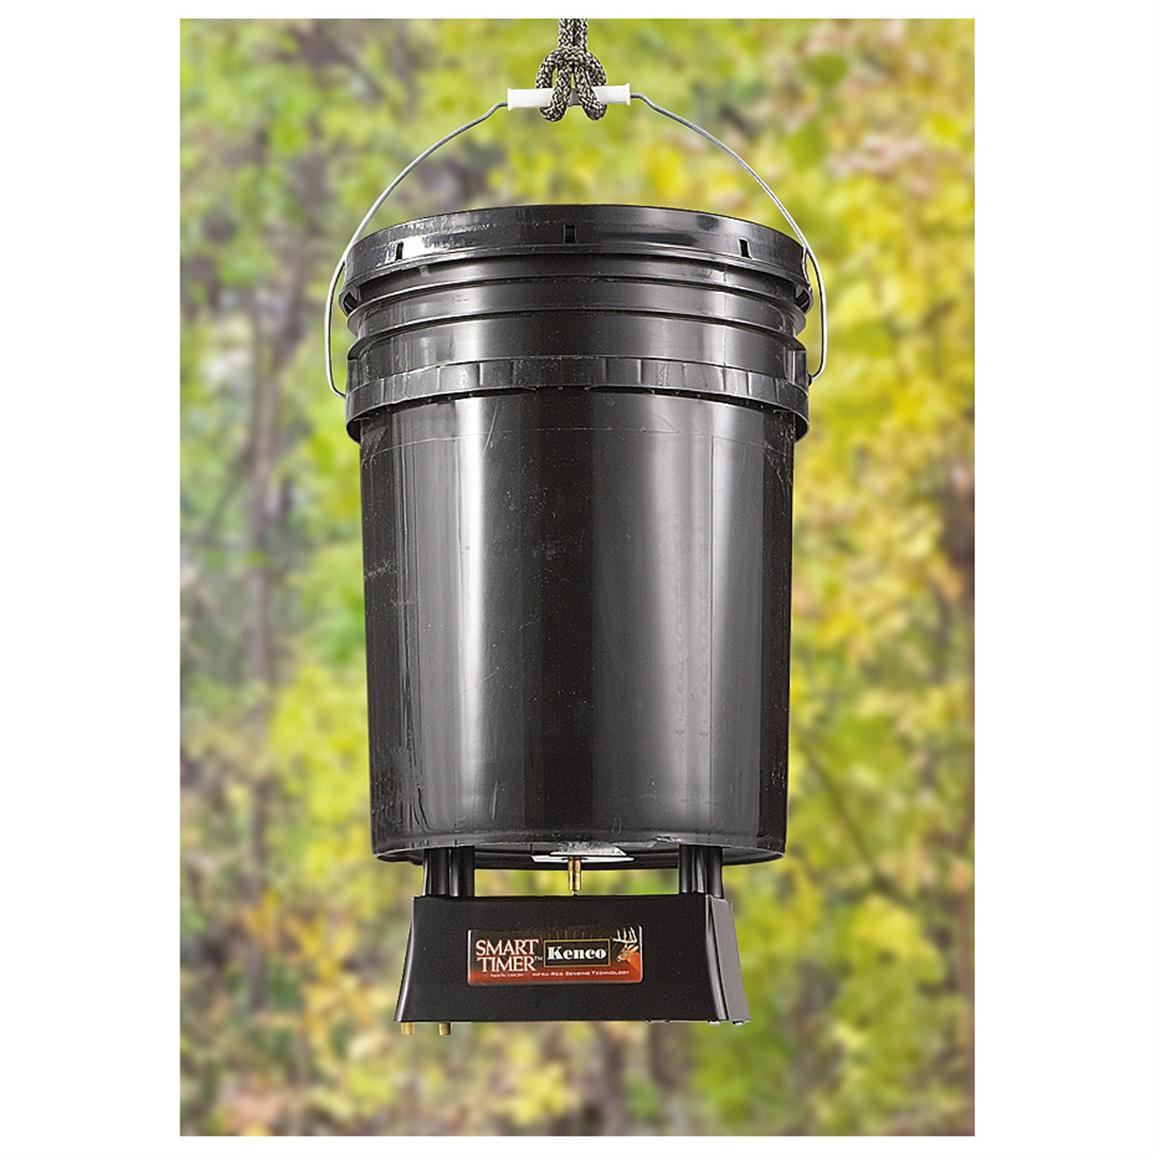 Kenco® Smart Timer™ Feeder Timer with 5-gallon Bucket